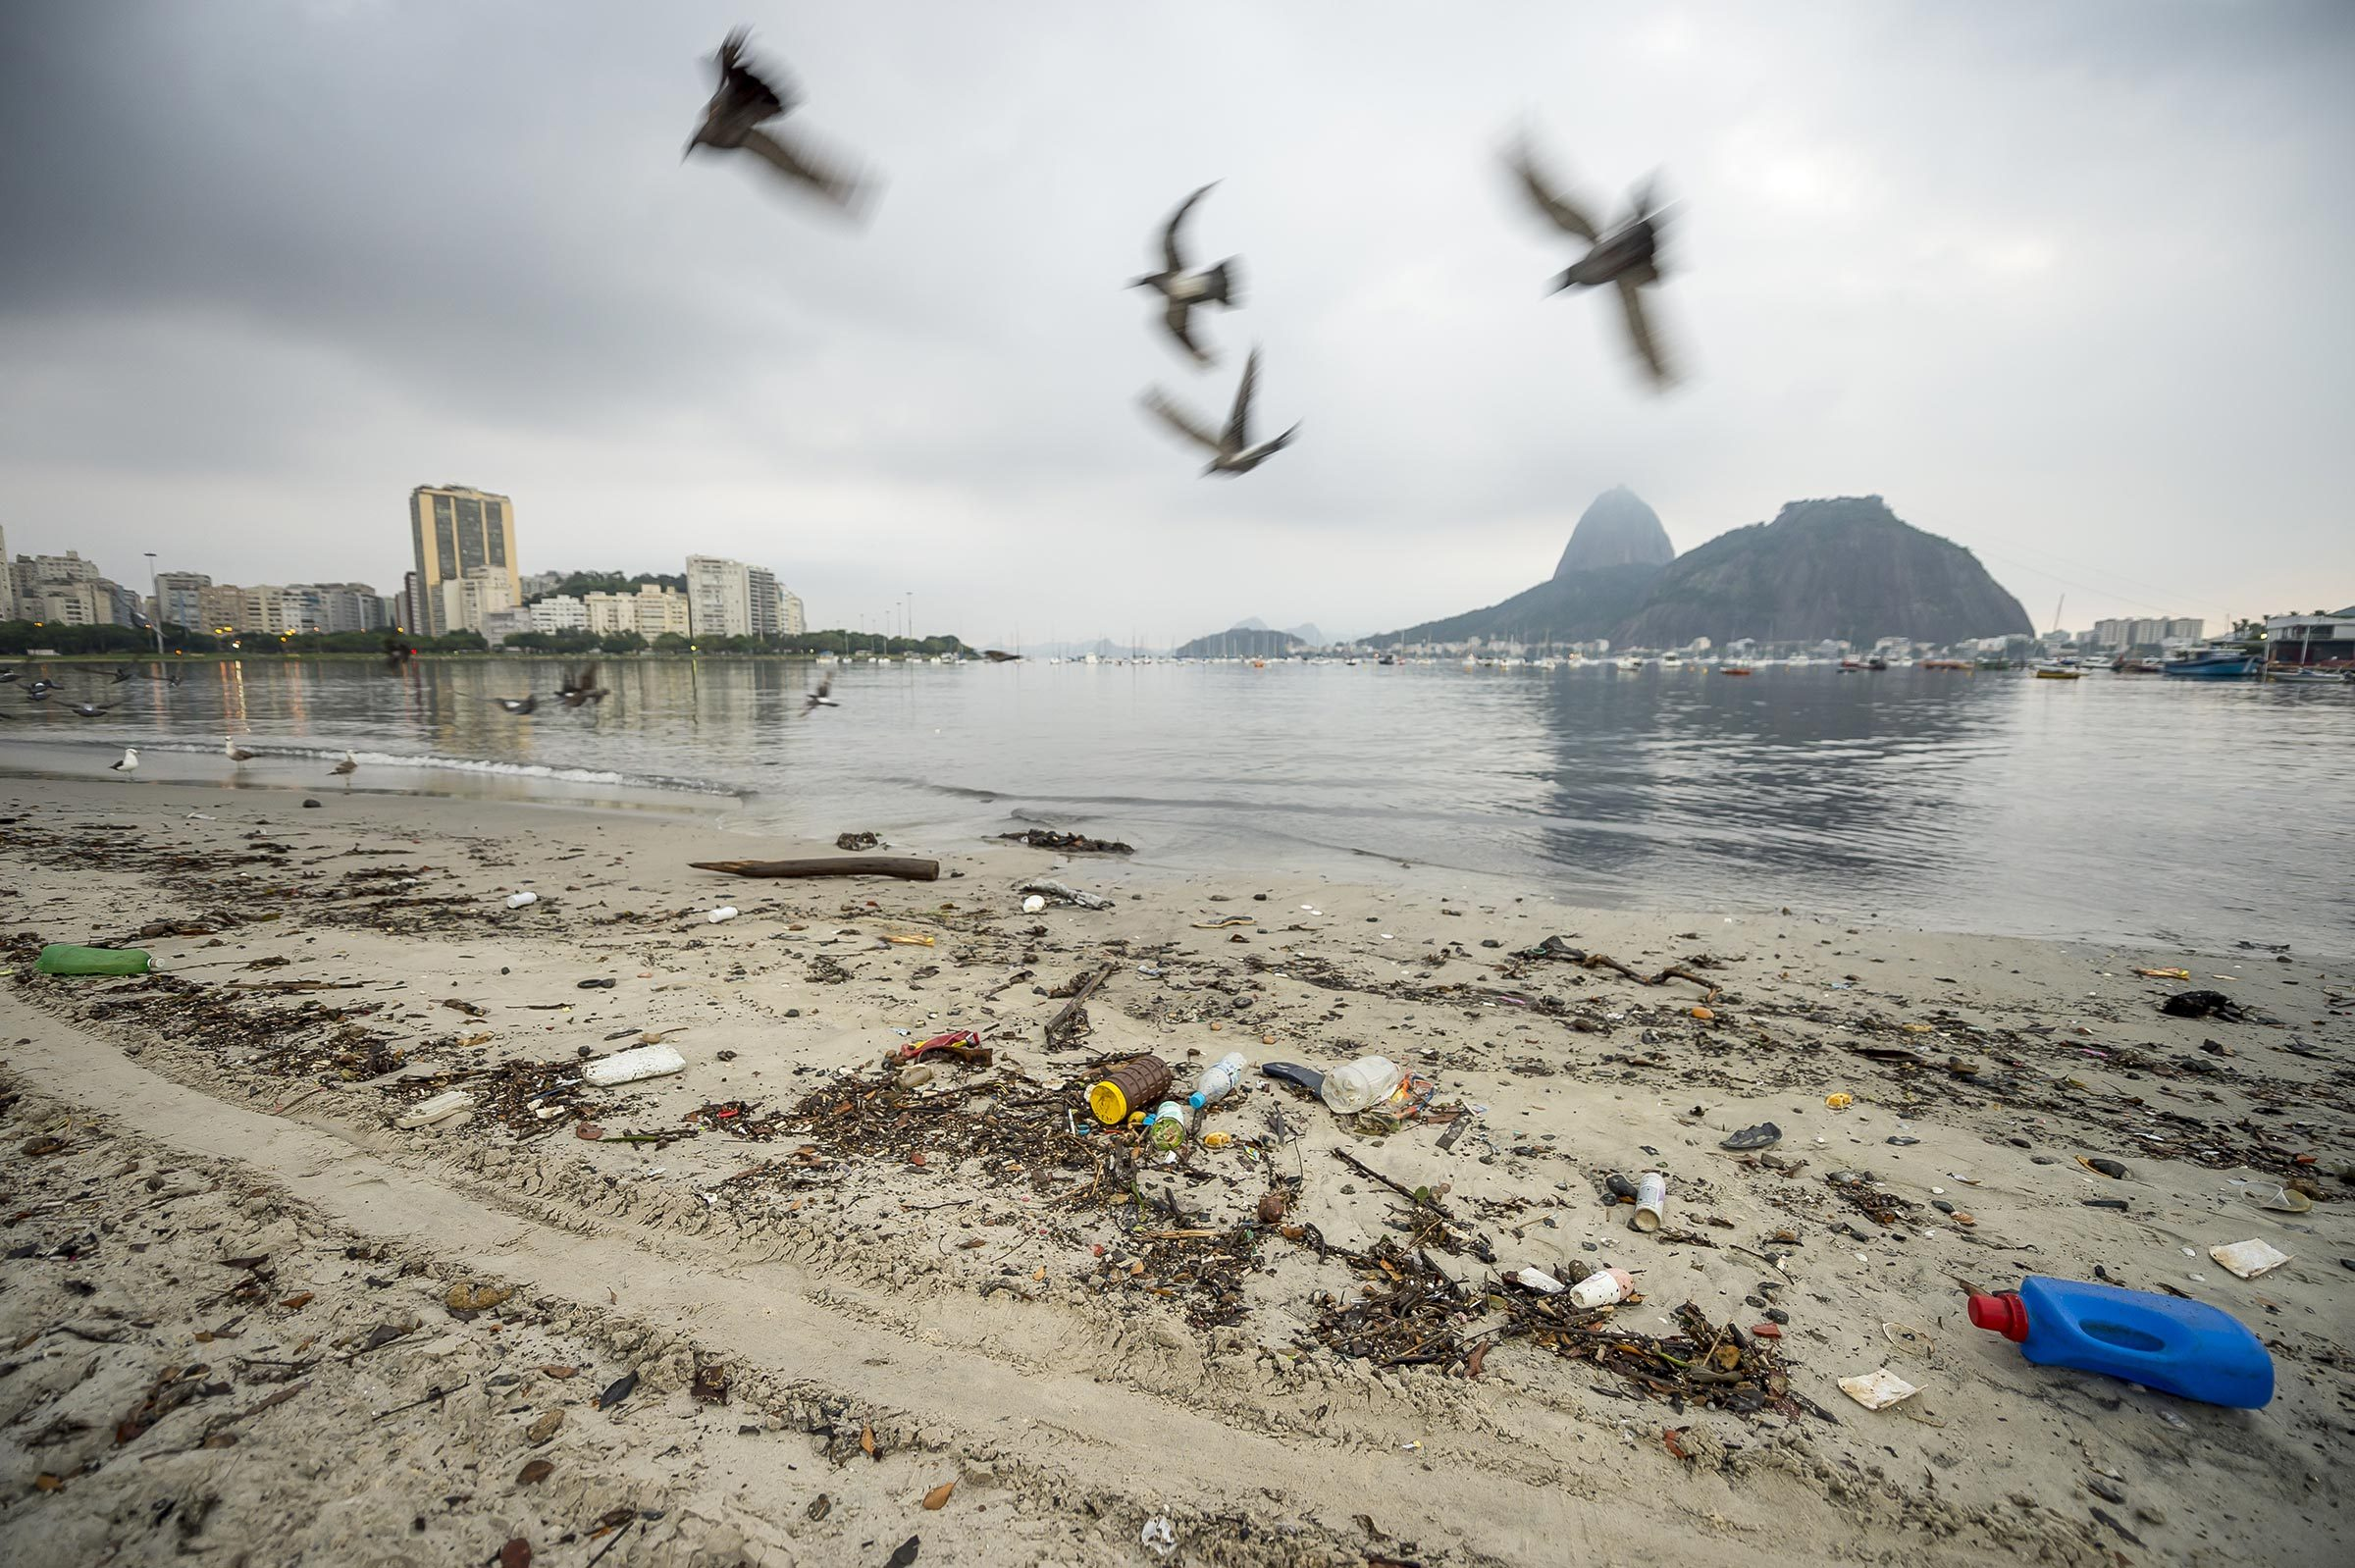 Garbage and pollution from Guanabara Bay wash ashore on Botafogo Beach in front of Sugarloaf Mountain in Rio de Janeiro, Brazil